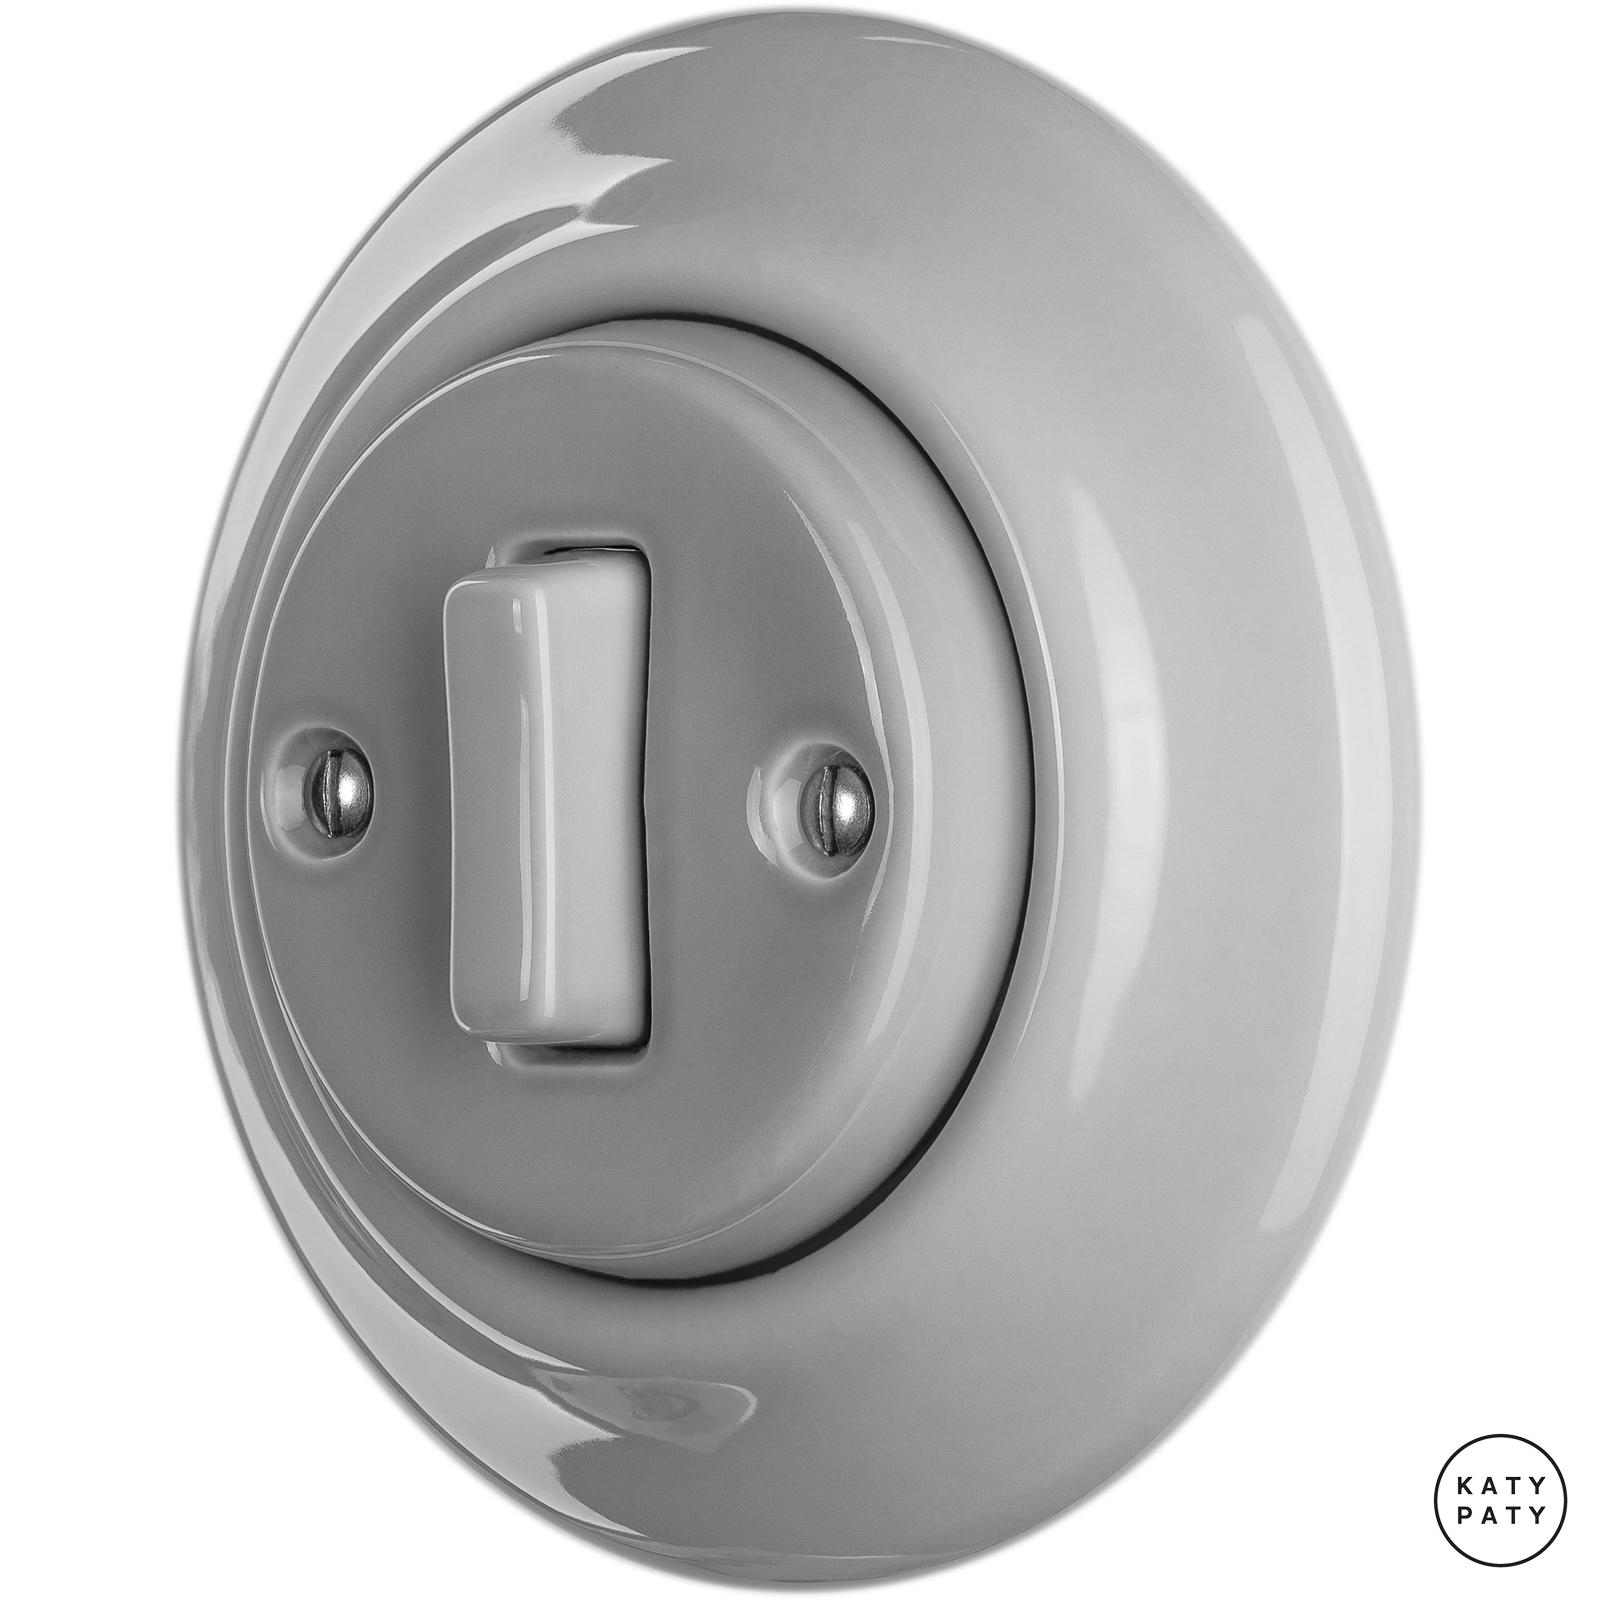 Porcelain switches - a single key - SLIM ()  - CANA | Katy Paty